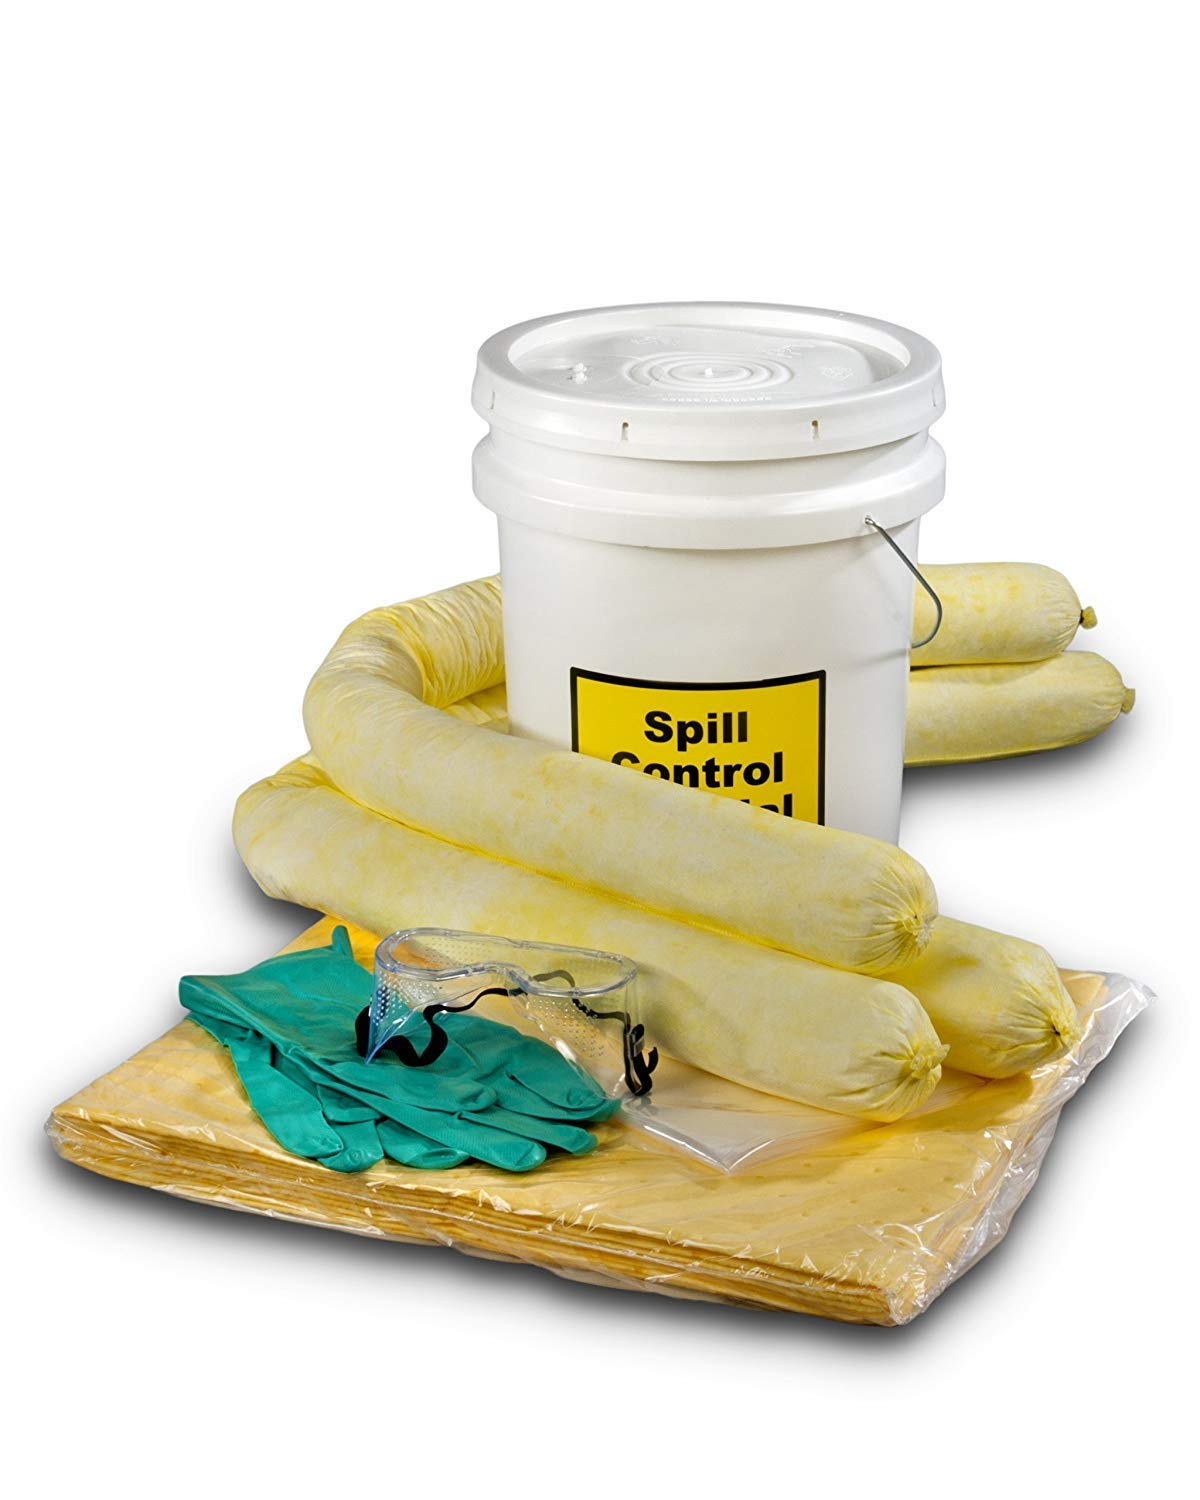 ESP SK-H5 16 Piece 5 Gallons Hazmat Absorbent Spill Kit, 5 Gallons Oil Absorbency (Pack of 3) by ESP (Image #1)